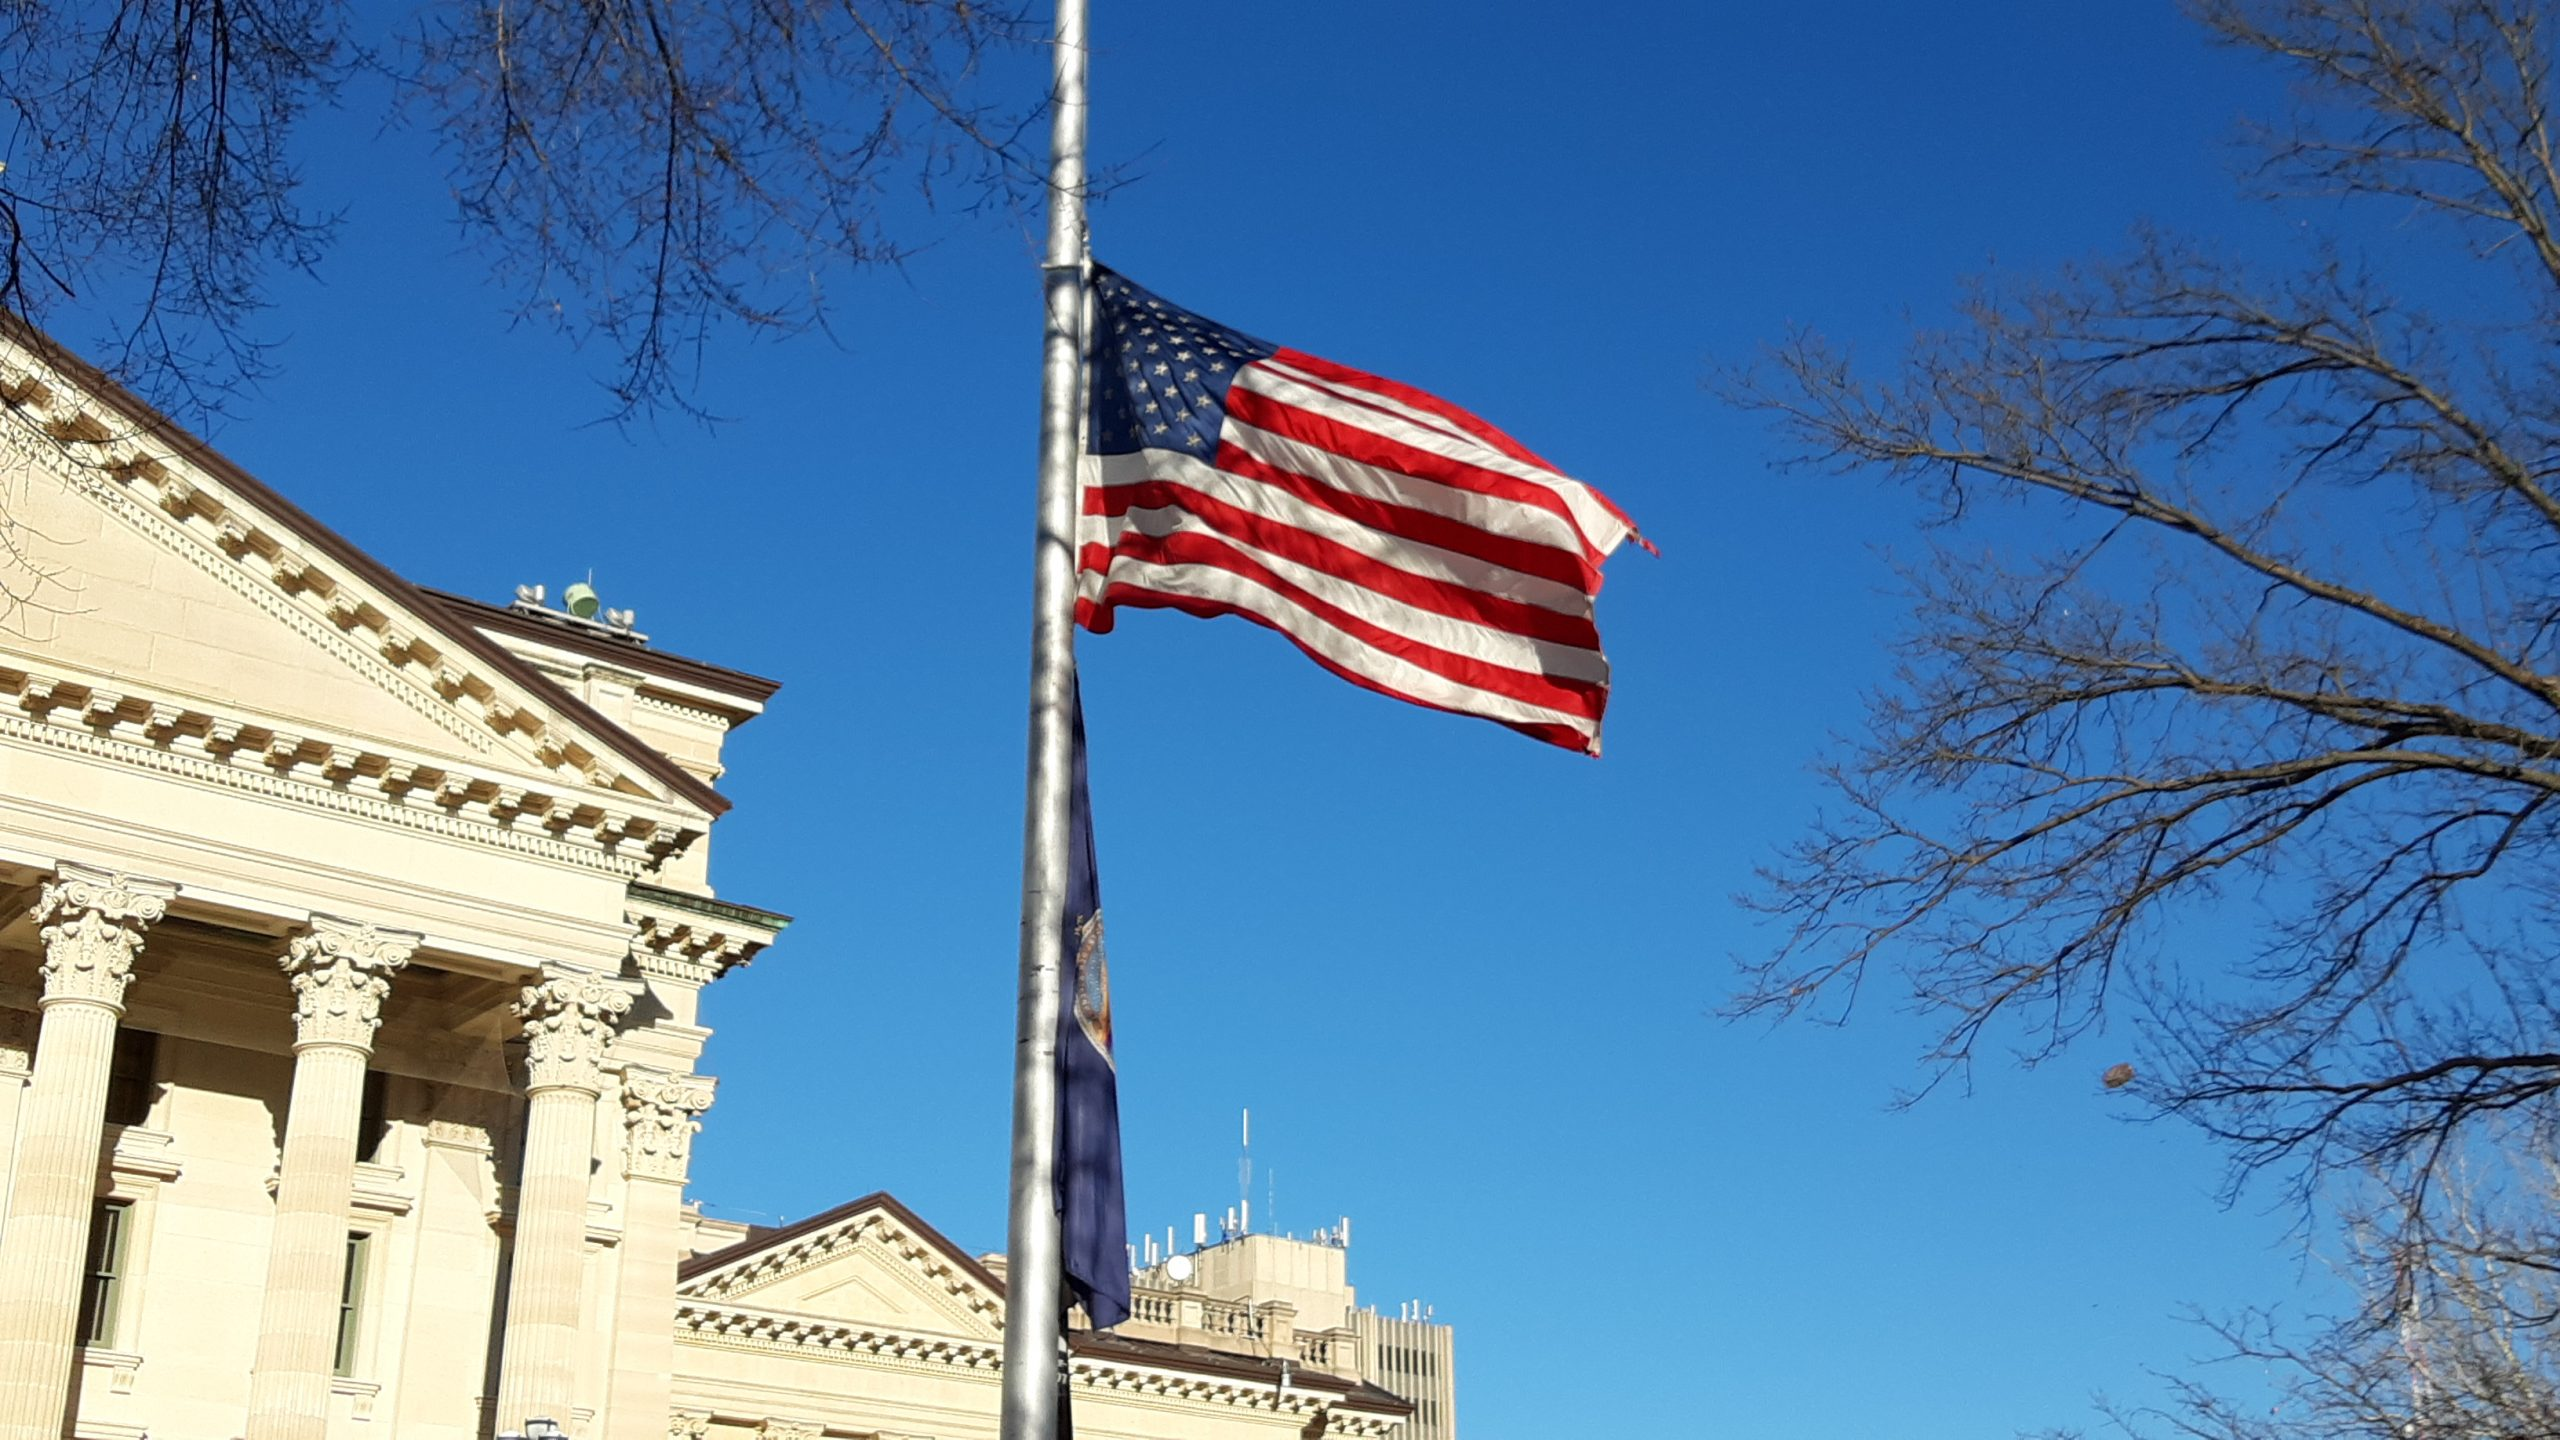 Gov. Laura Kelly instructed flags in Kansas fly at half-staff through Monday in honor of more than 2,000 Kansans who died after infected with COVID-19. (Tim Carpenter/Kansas Reflector)